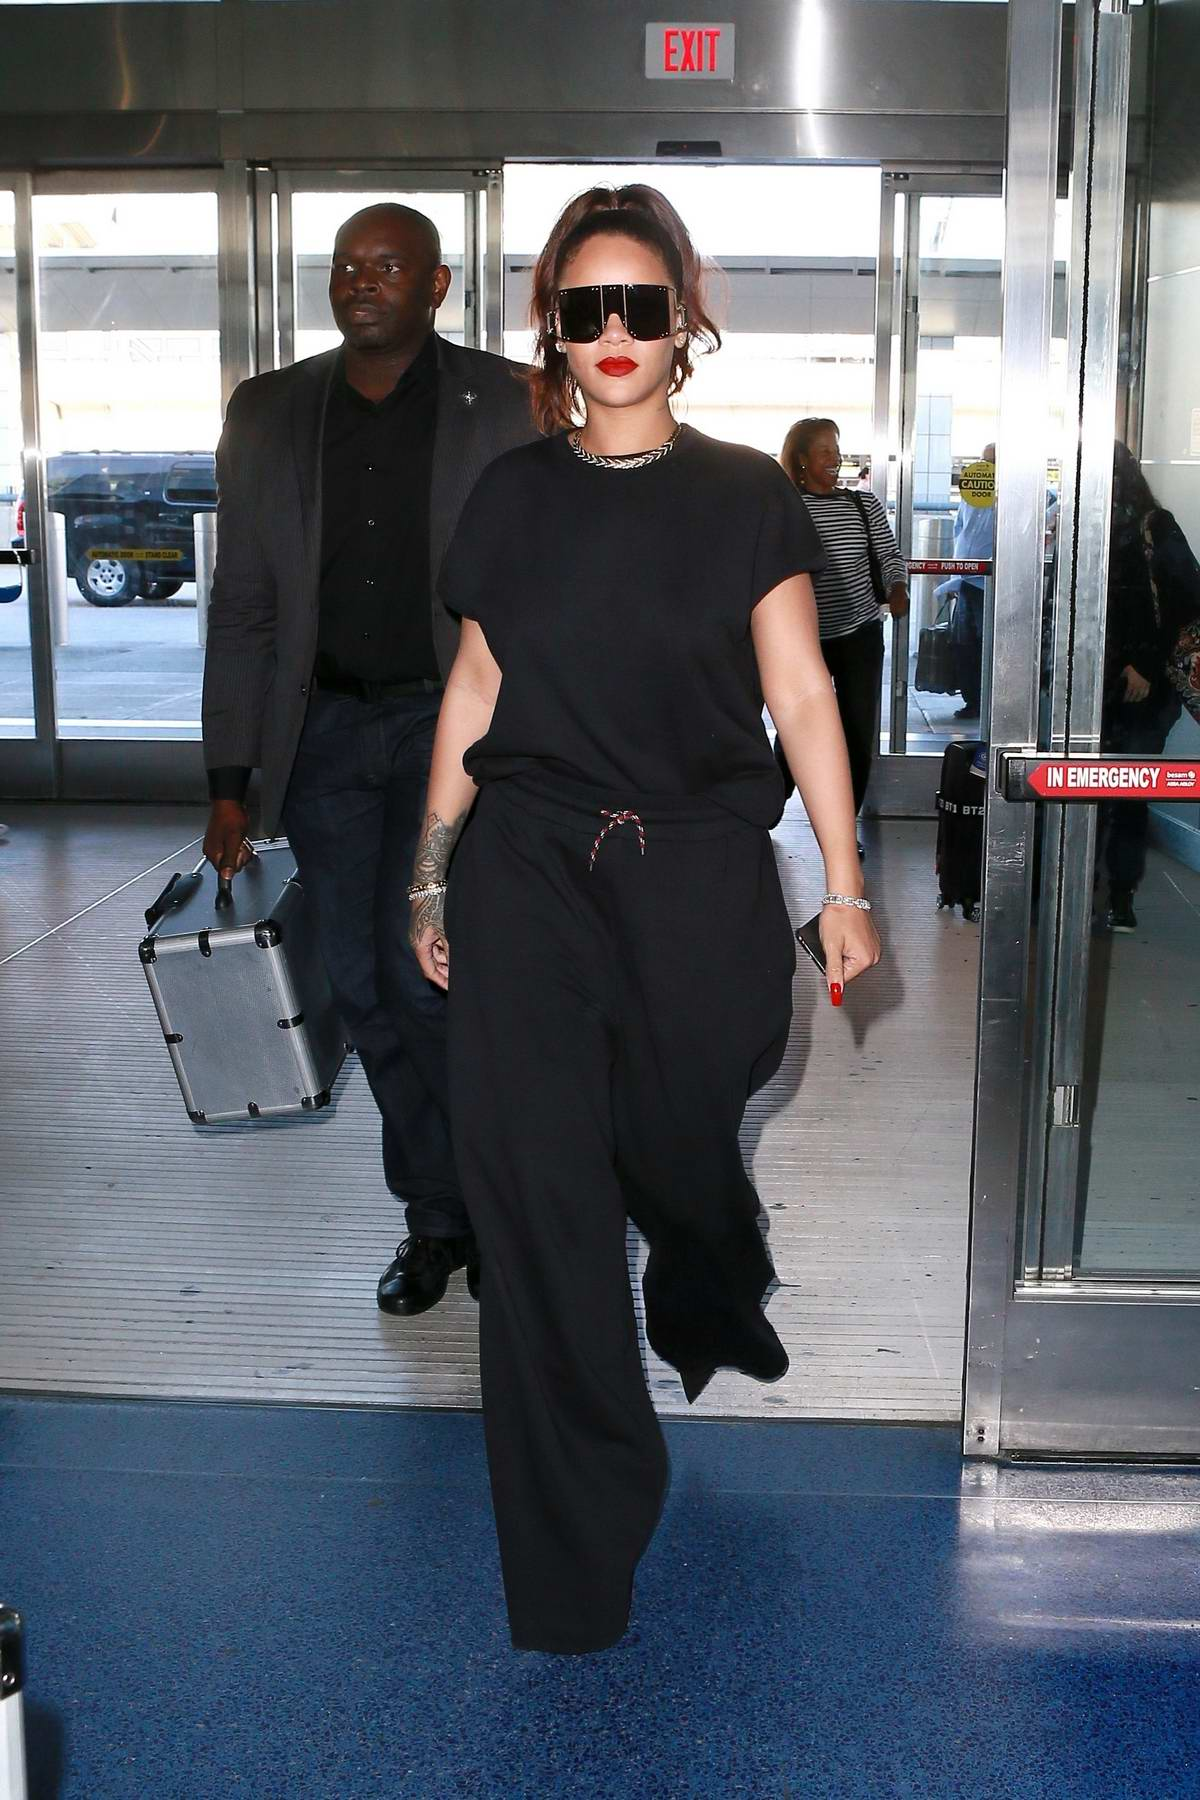 Rihanna looks stylish in an all-black ensemble as she arrives for a flight out of JFK airport in New York City